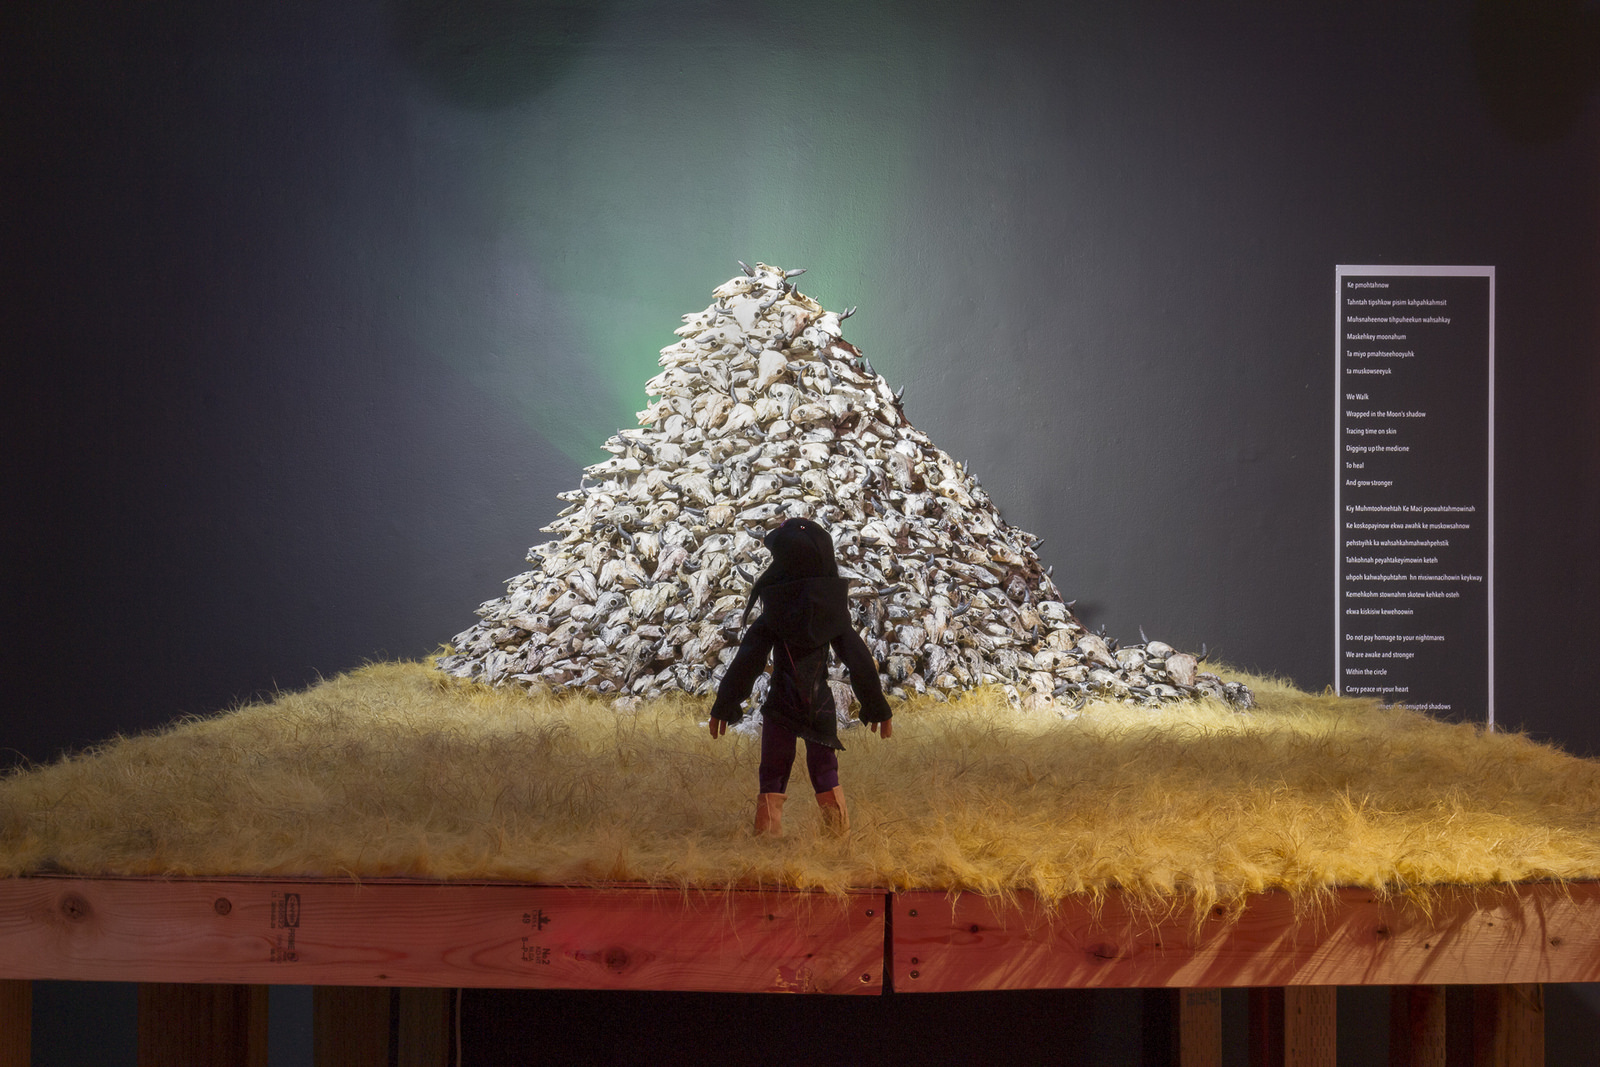 stop motion animation of Canadian indigenous man facing towards a large pile of bison skulls